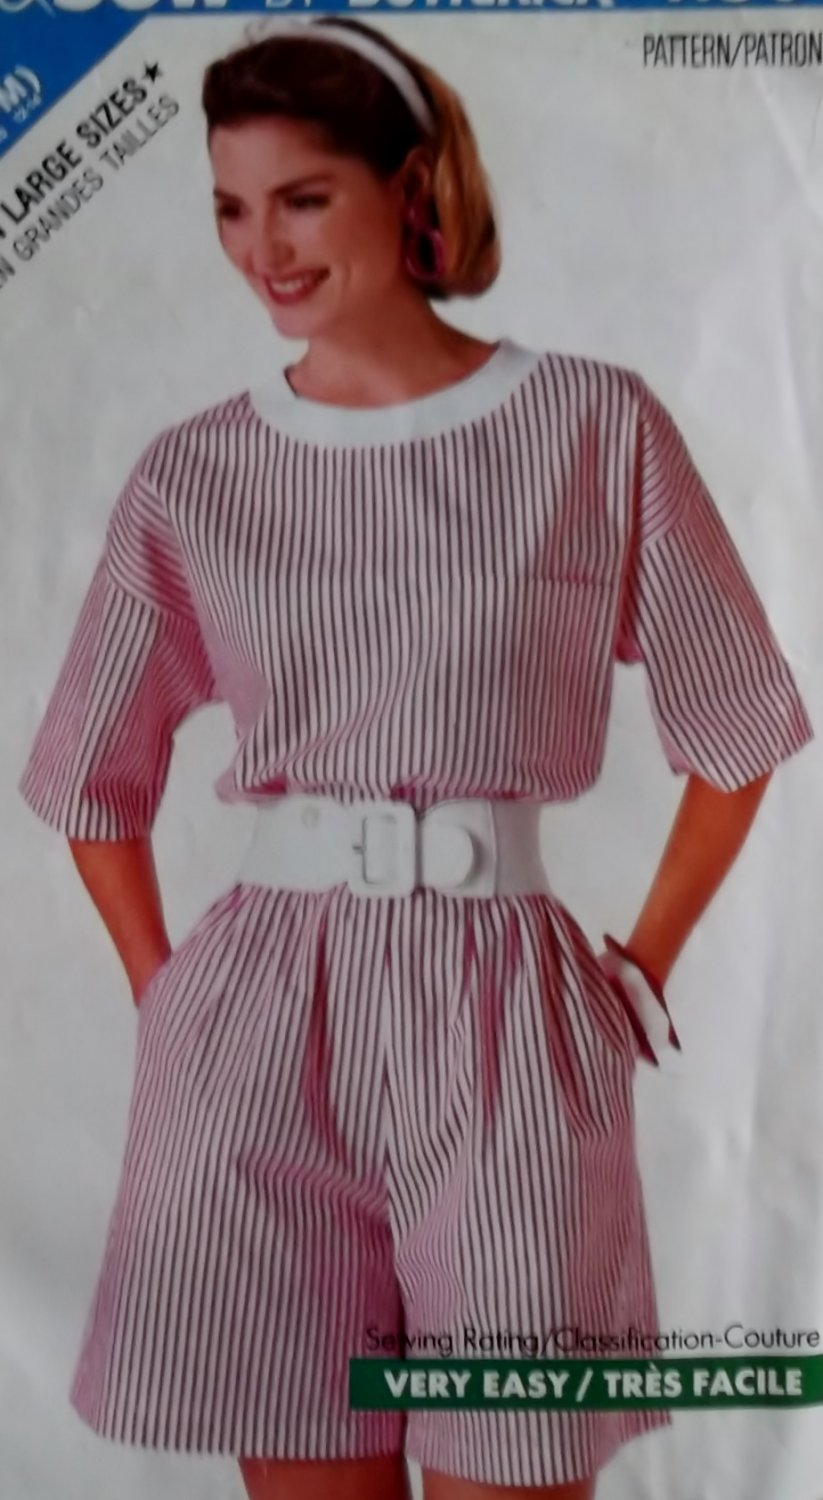 McCalls 4180 Pattern Misses' Top & Shorts, Sizes 6, 8/10, 12/14, UNCUT